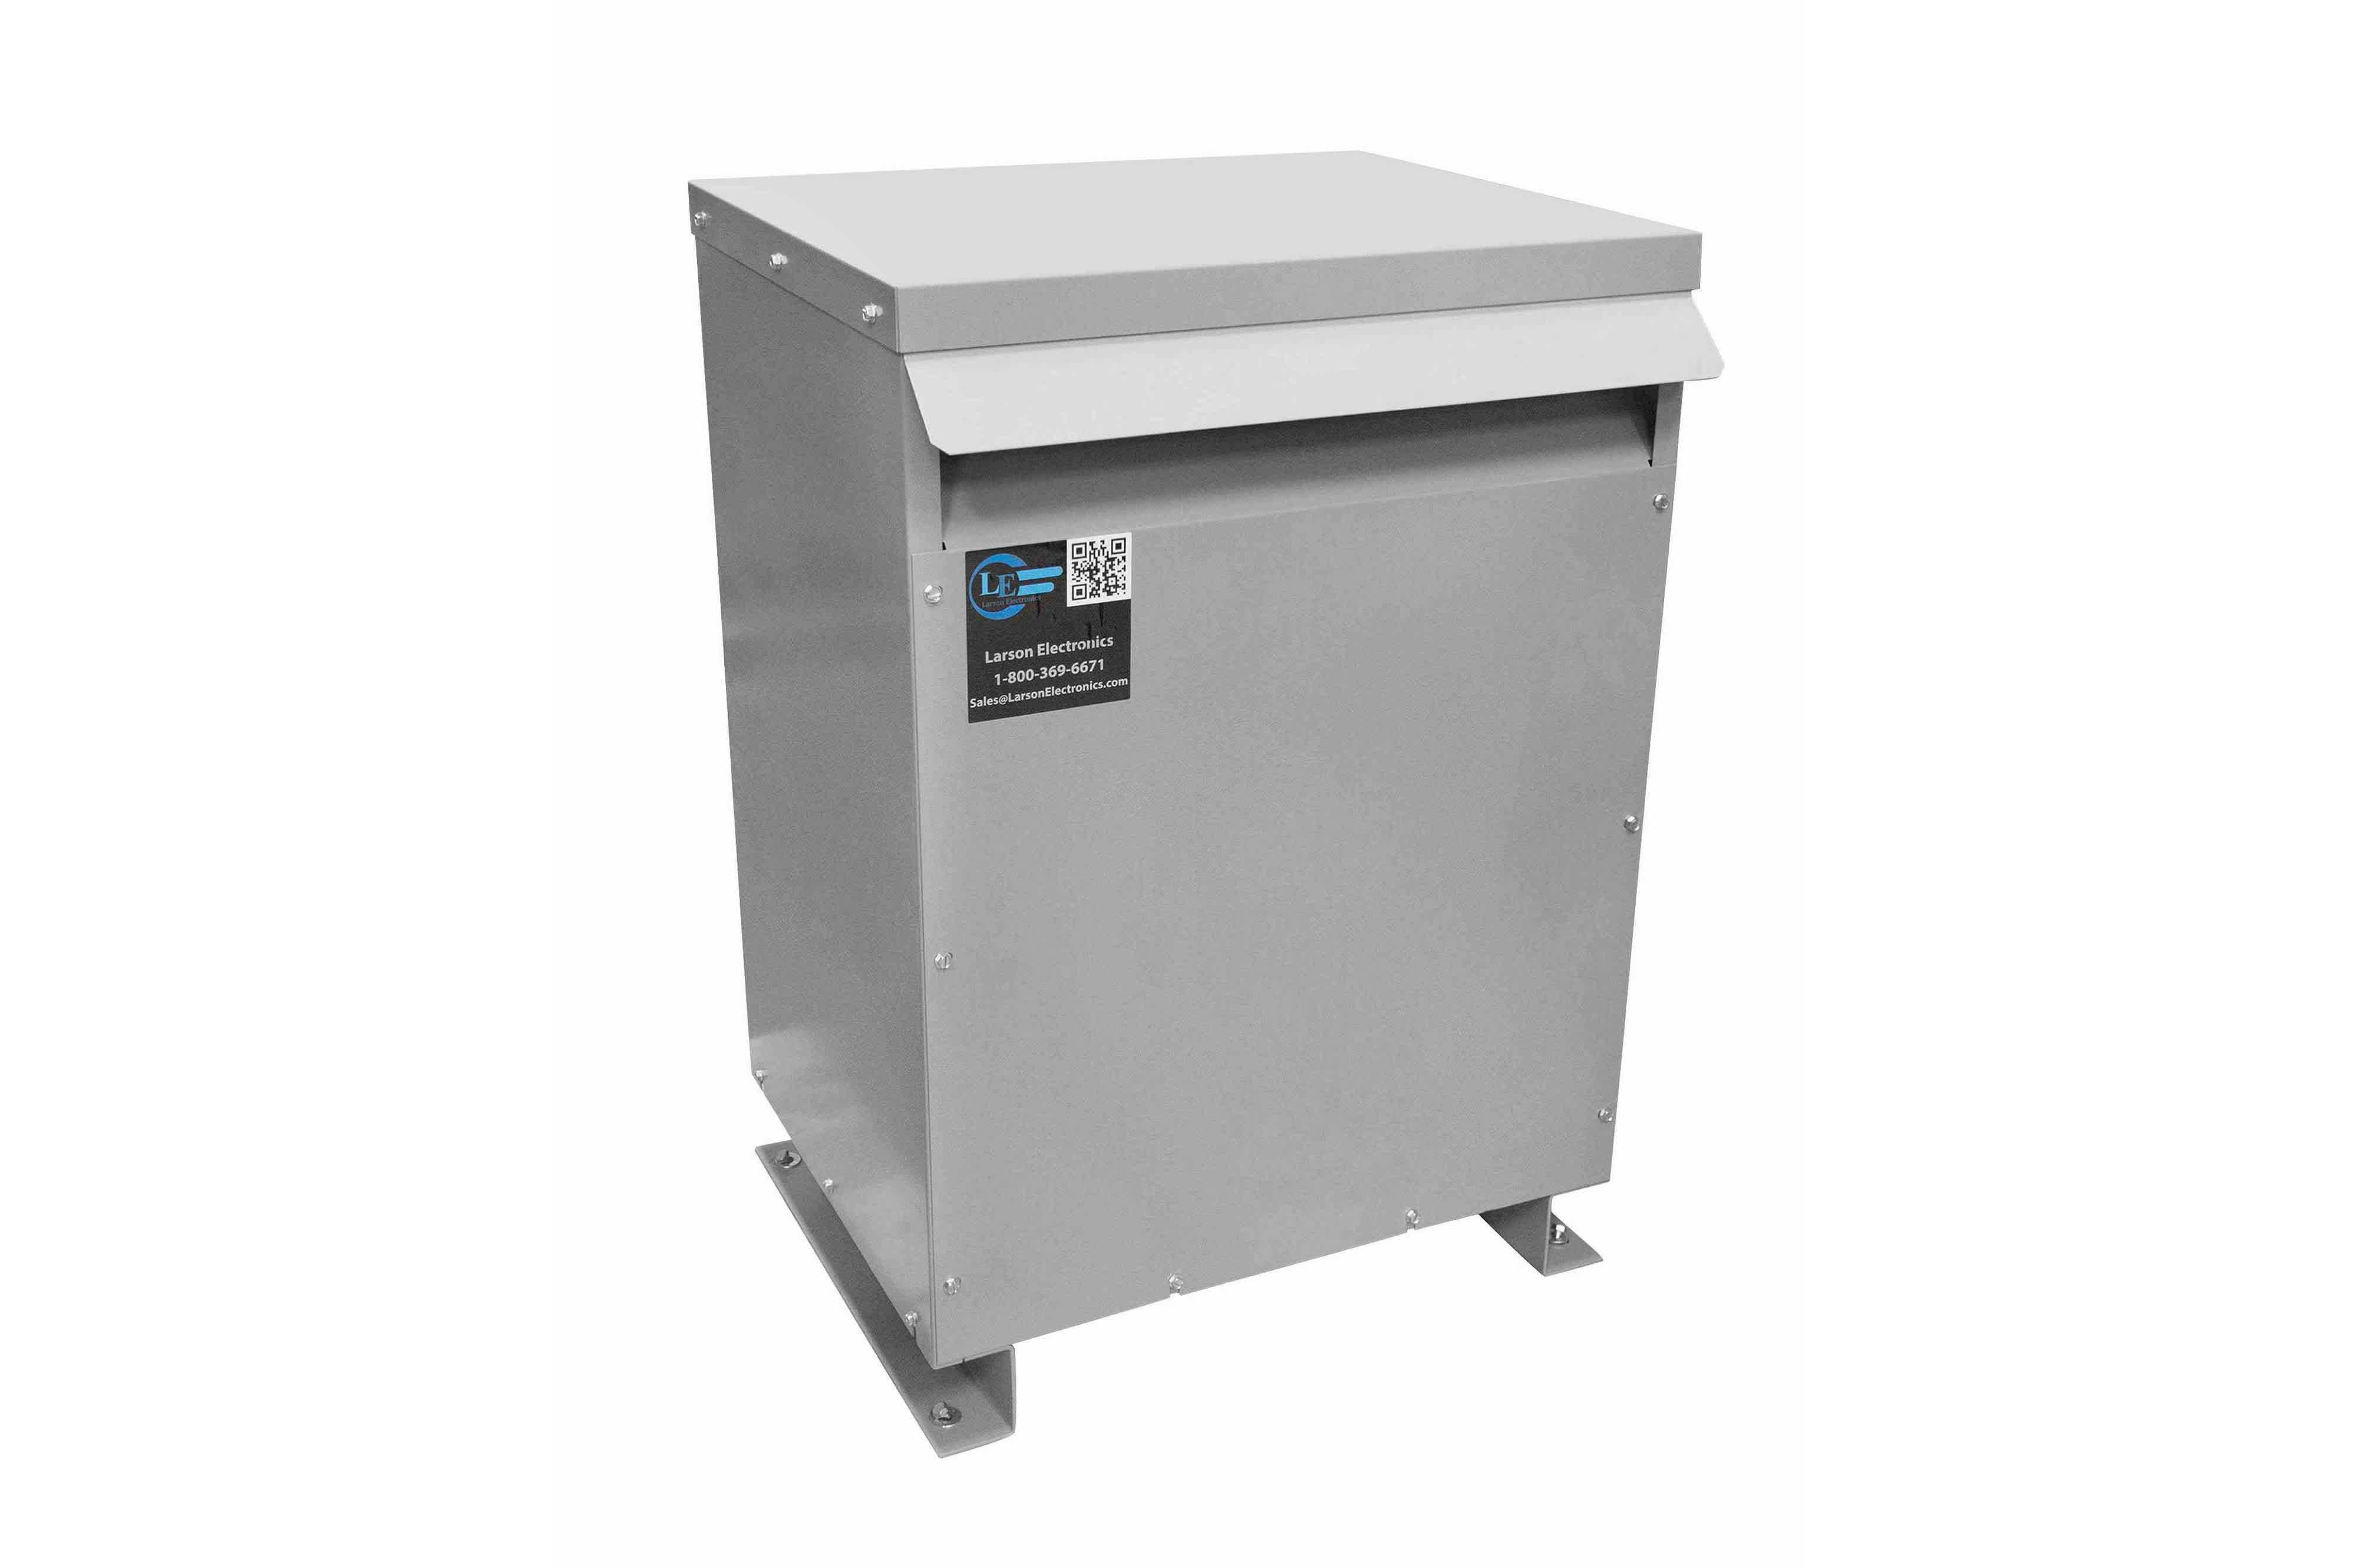 22.5 kVA 3PH Isolation Transformer, 480V Delta Primary, 480V Delta Secondary, N3R, Ventilated, 60 Hz